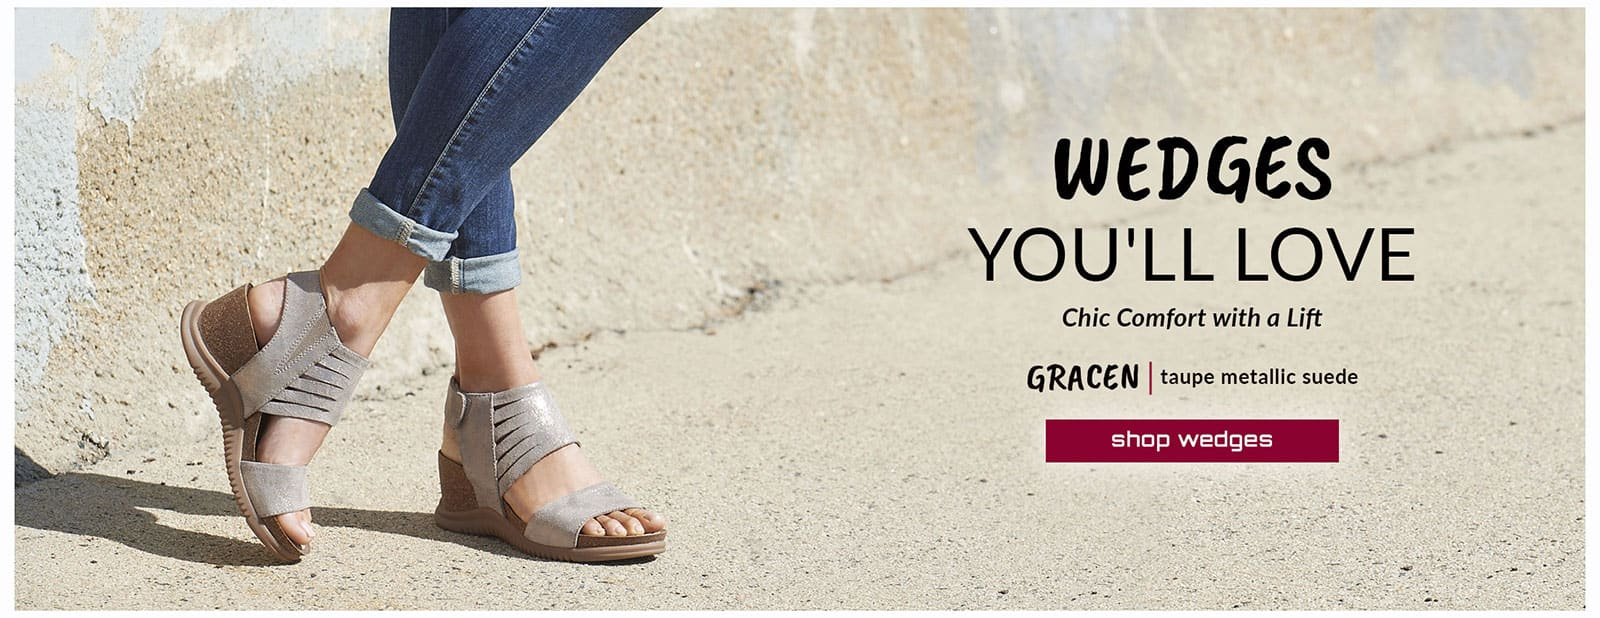 Wedges you'll love. Chic Comfort with a Lift. Featured style: Gracen sandal in taupe metallic suede. Shop Wedges.